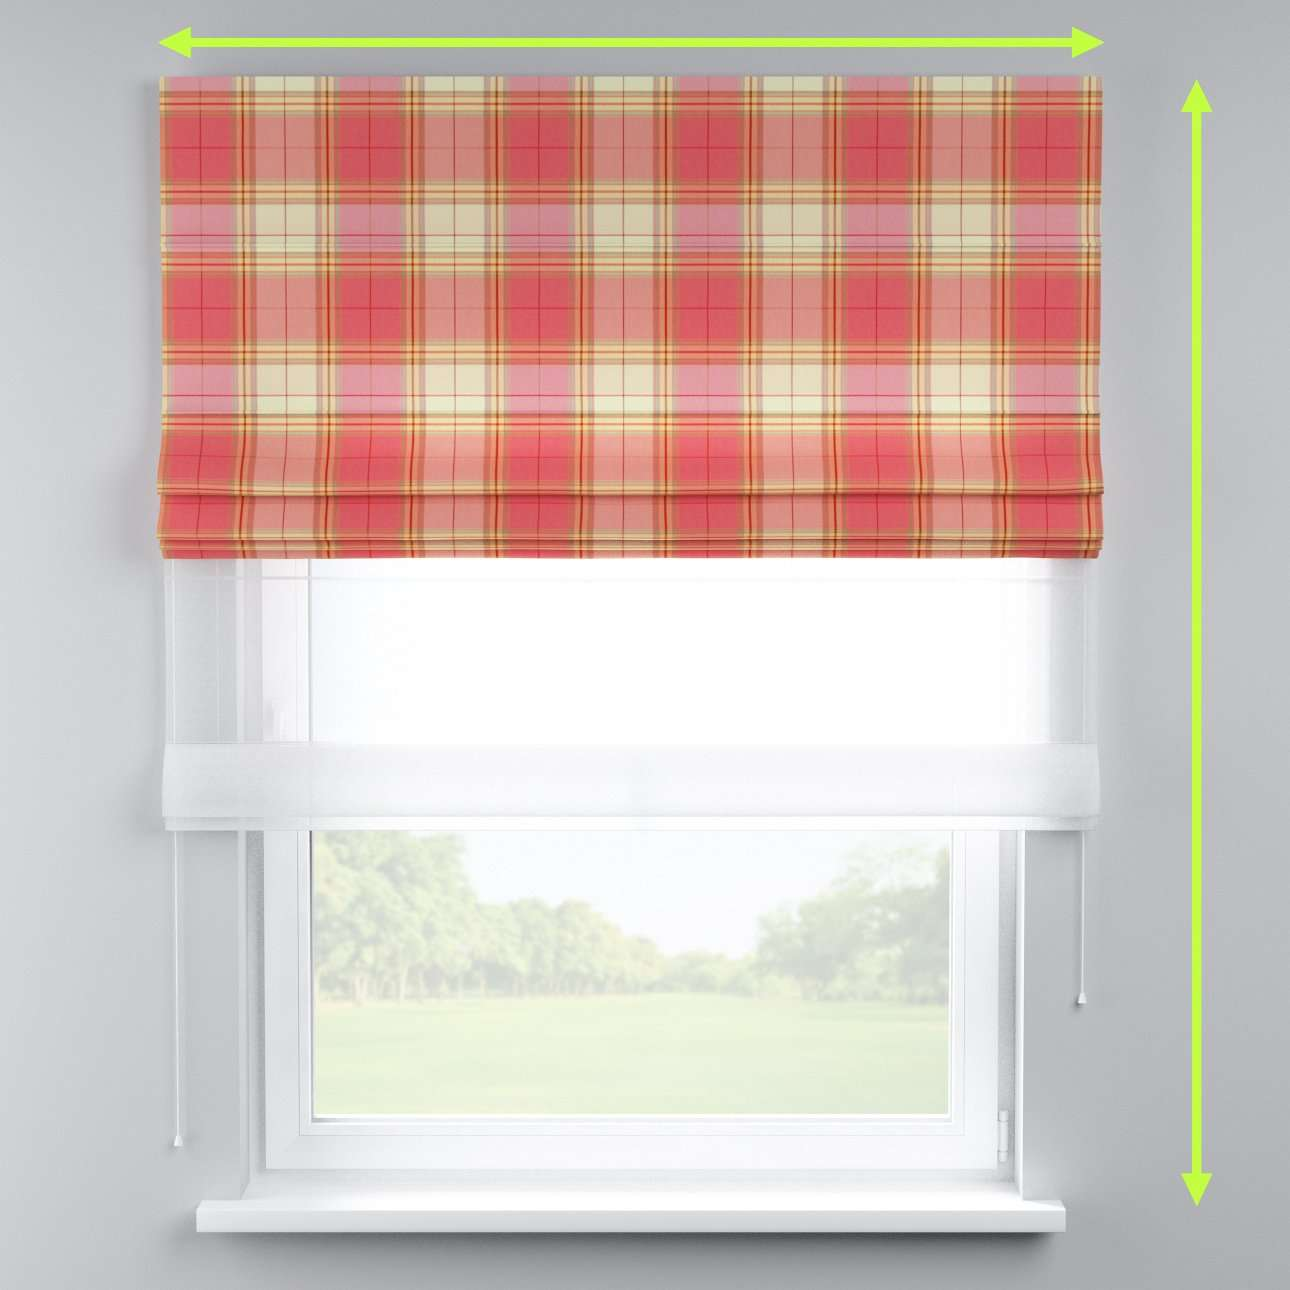 Voile and fabric roman blind (DUO II) in collection Bristol, fabric: 125-25